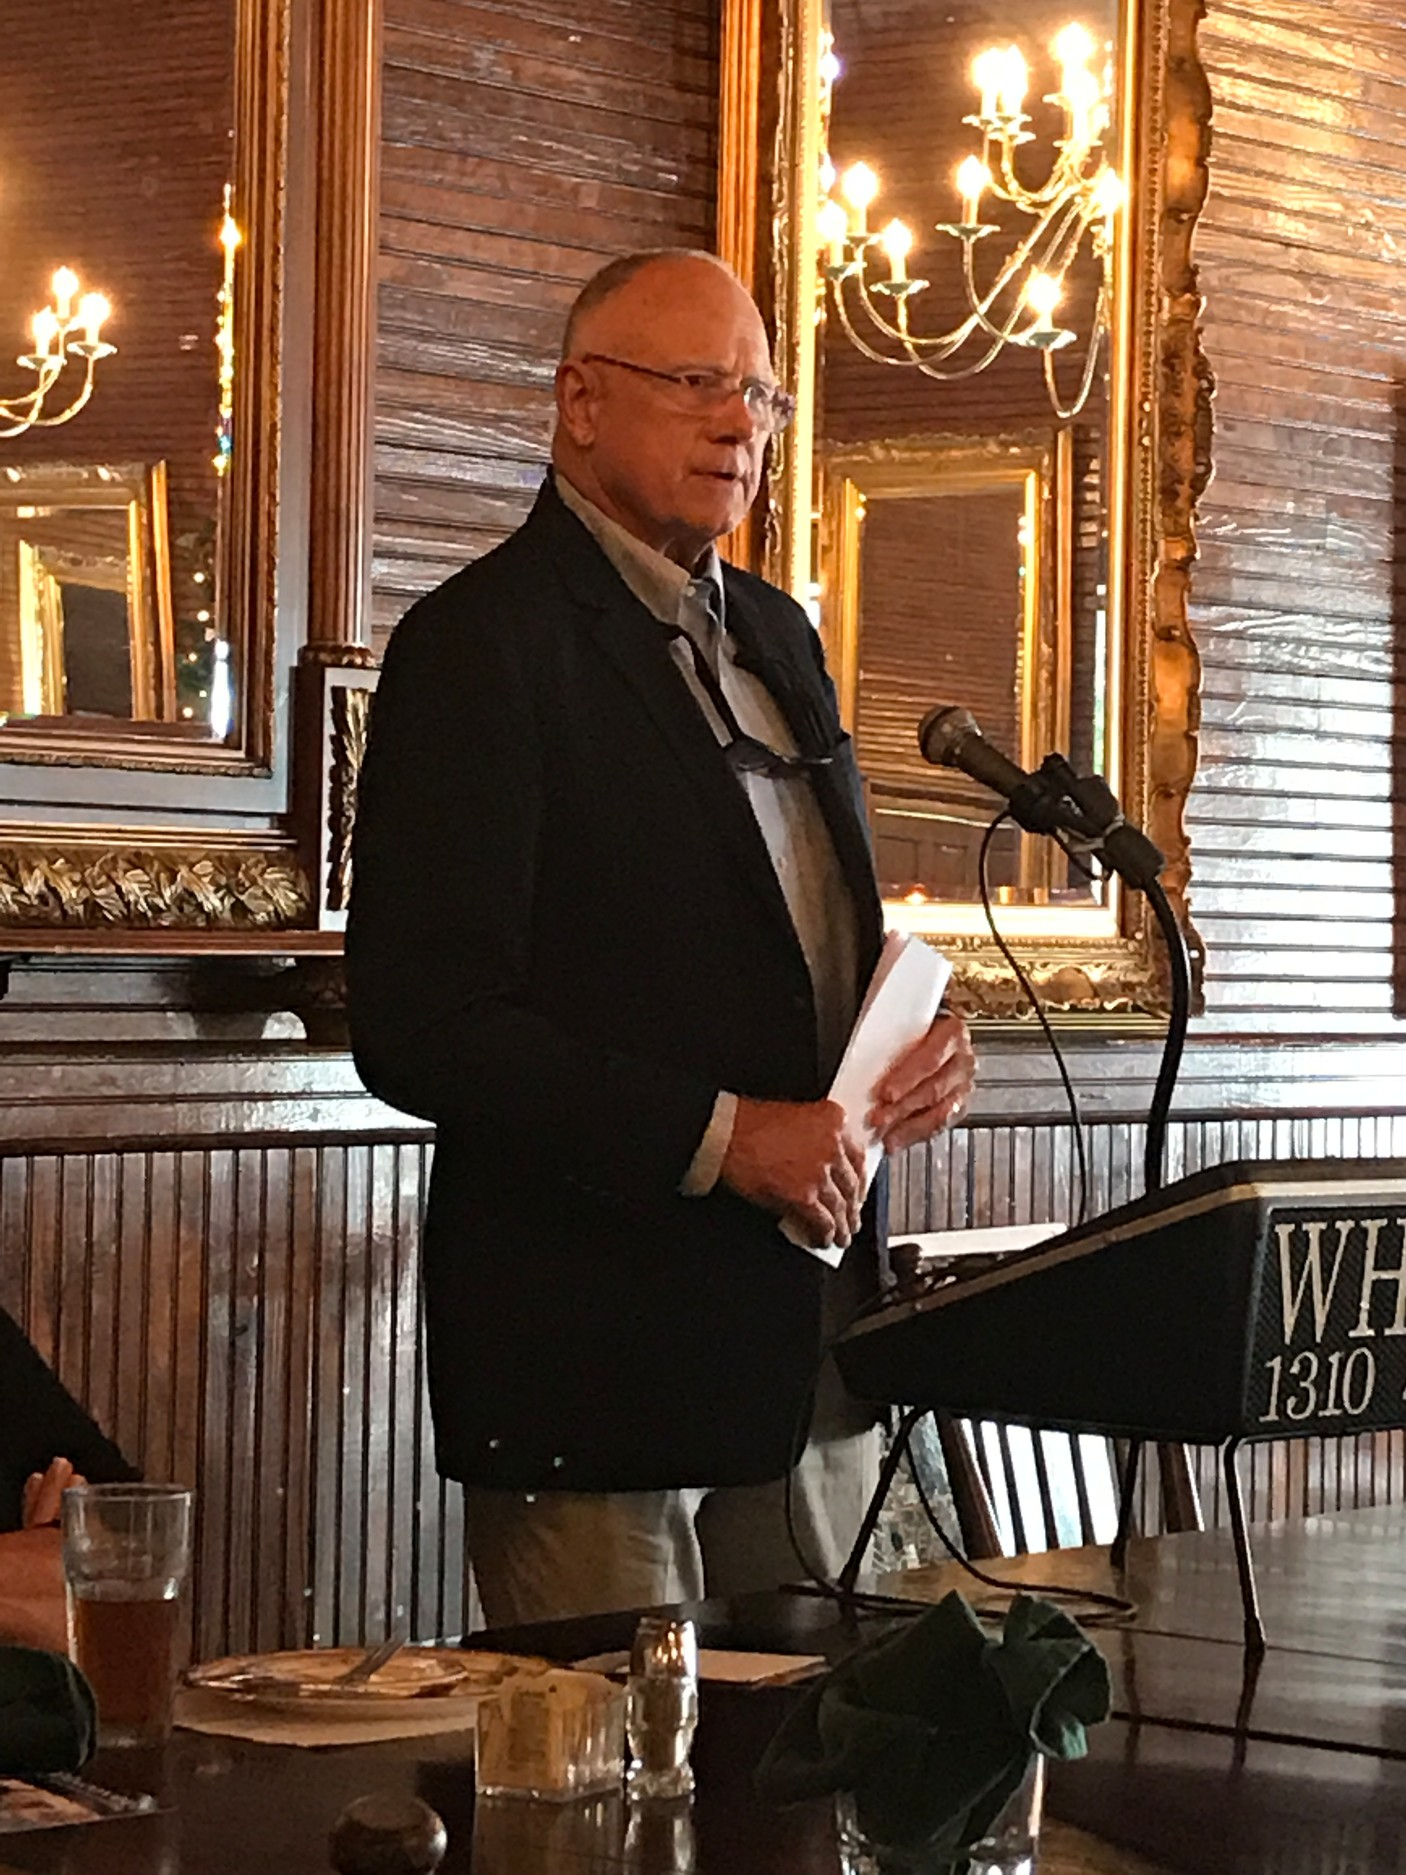 Jeff Rouzie, Director of Economic Development in Foley, spoke about various possibilities for the future of Foley's schools while appearing as the guest speaker for the Foley Woman Club's Kick Off Meeting.